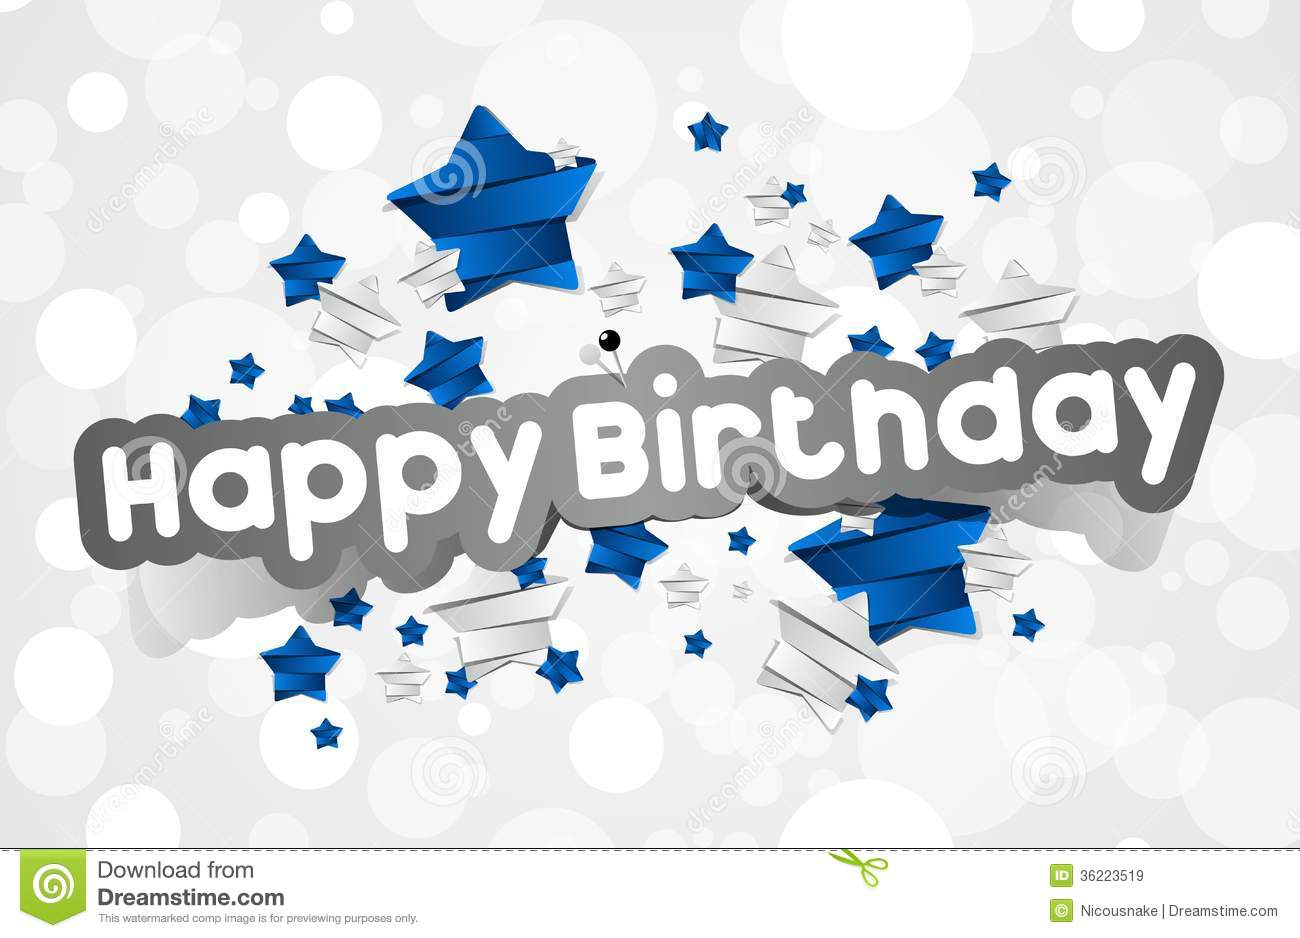 Happy Birthday Card Royalty Free Stock Images - Image: 36223519